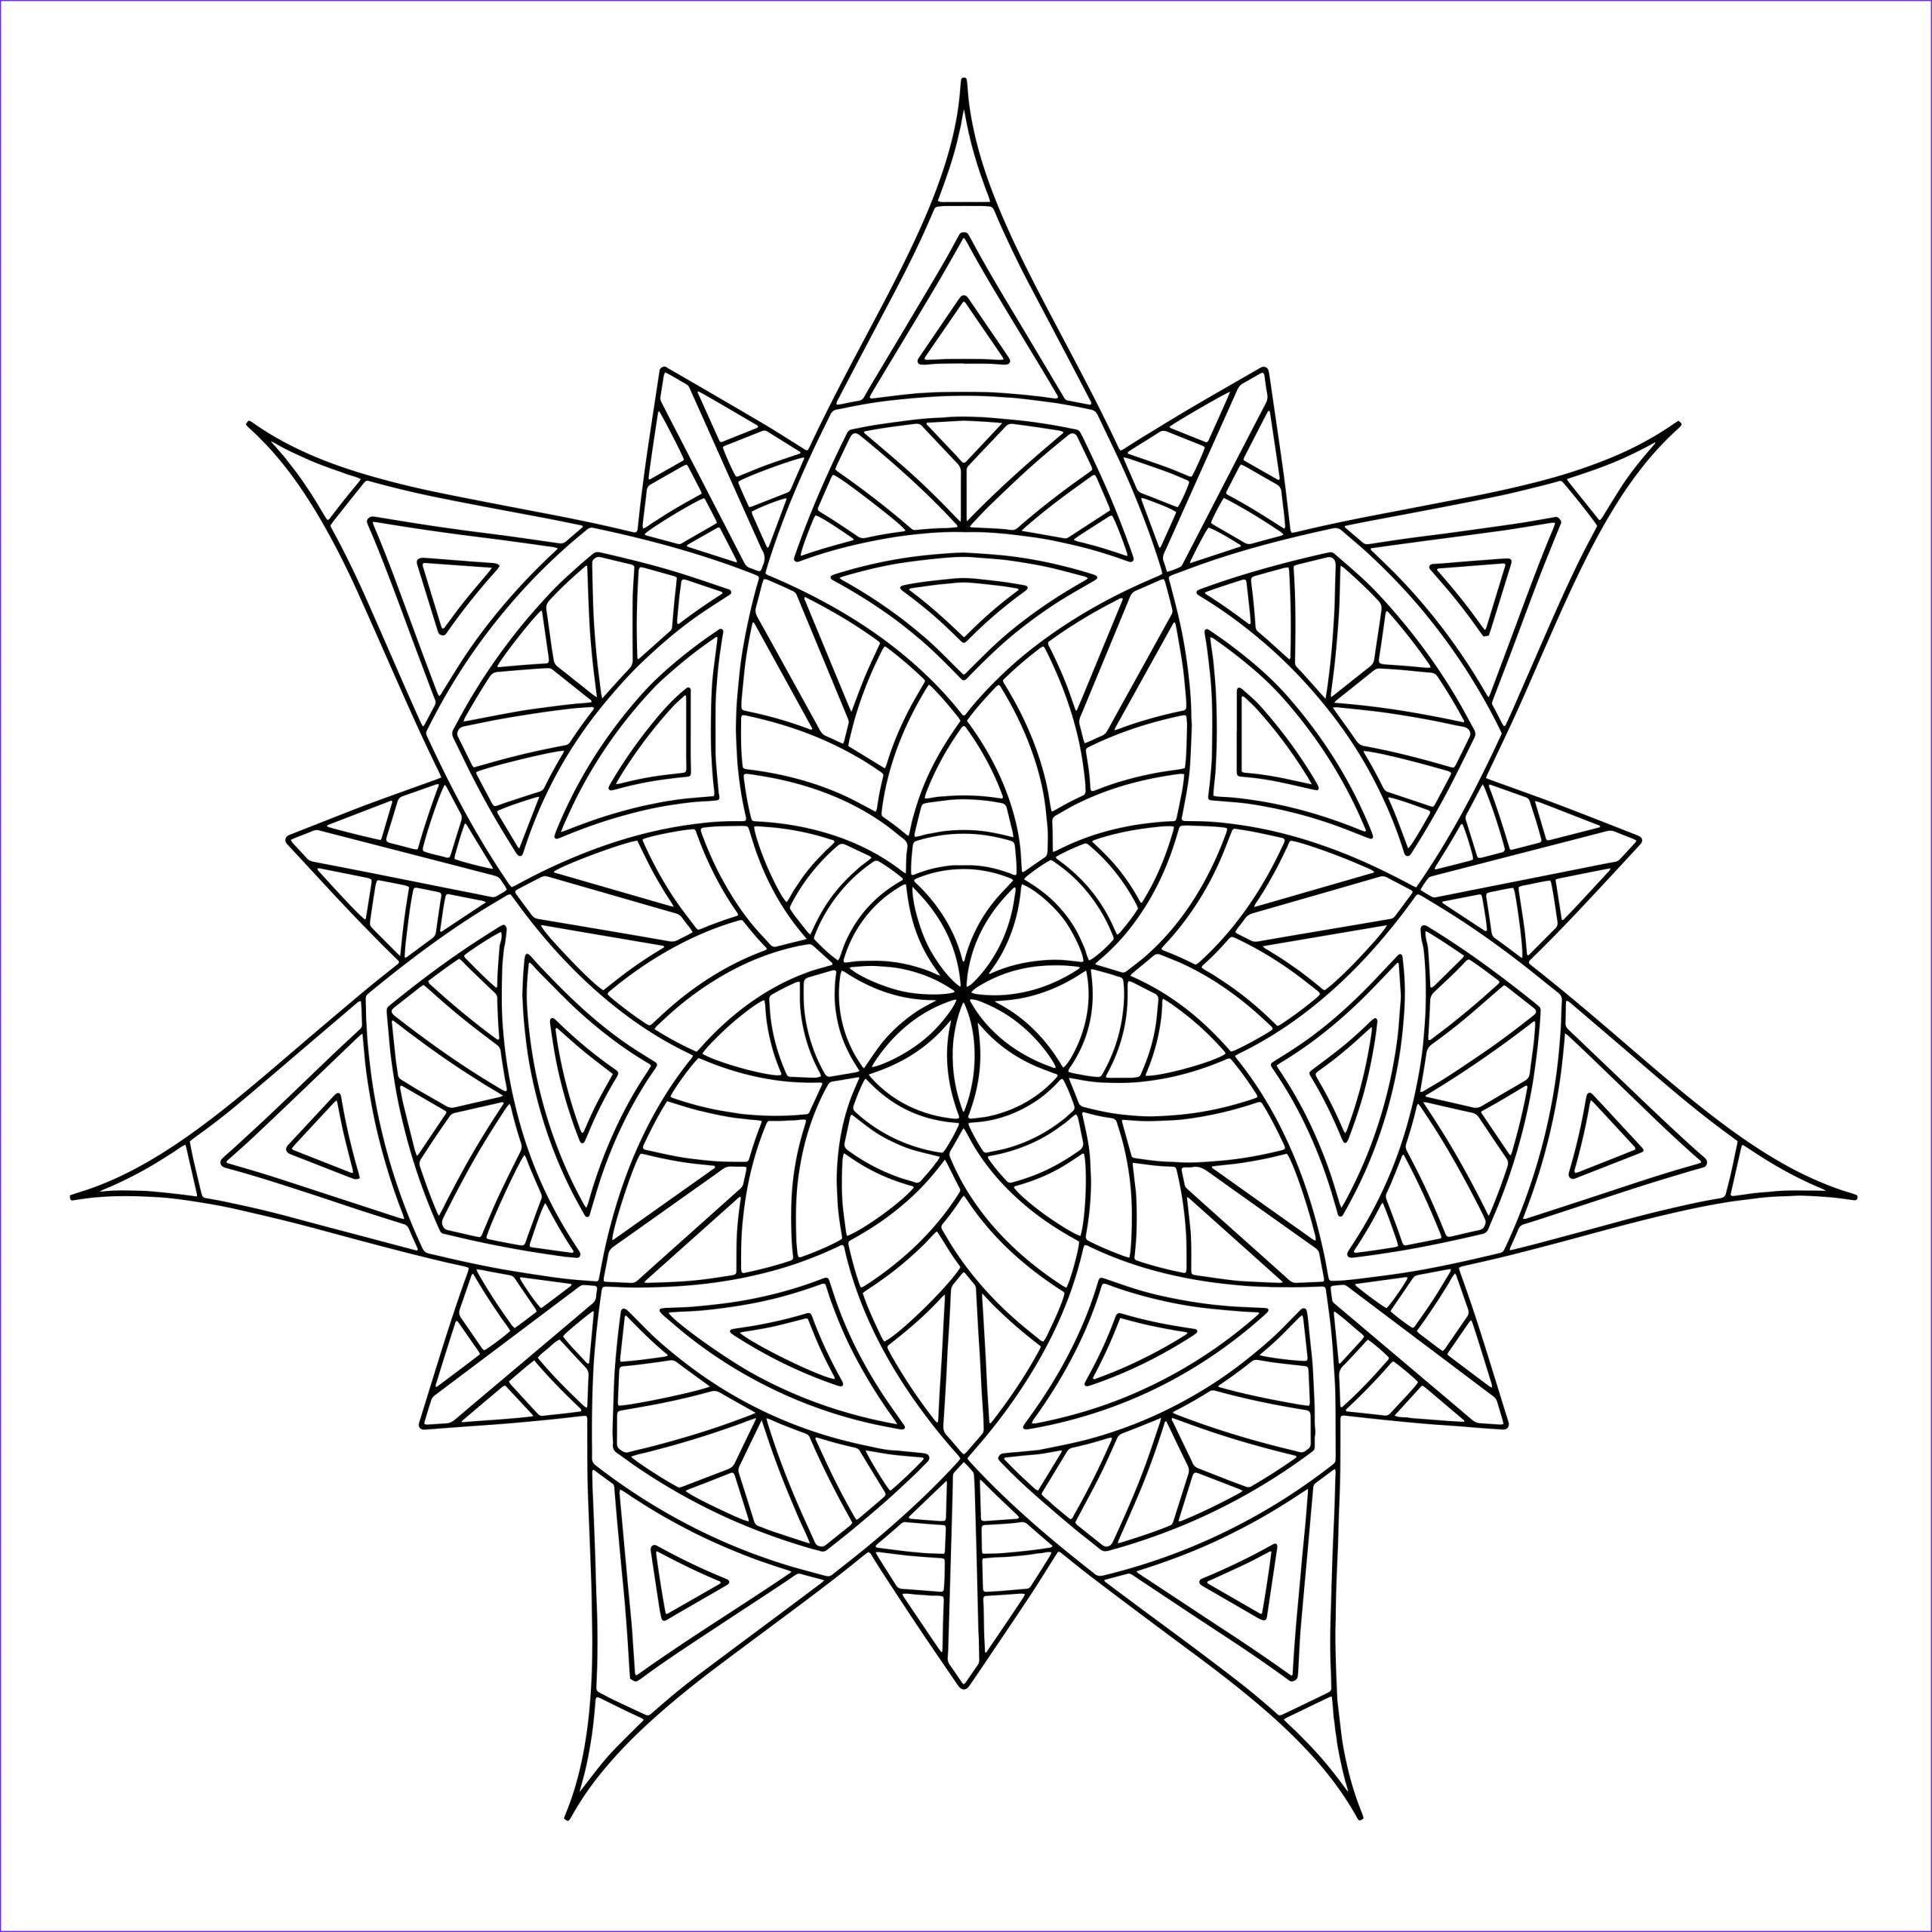 Free Printable Geometric Coloring Pages For Adults In 2020 Geometric Coloring Pages Mandala Coloring Pages Pattern Coloring Pages